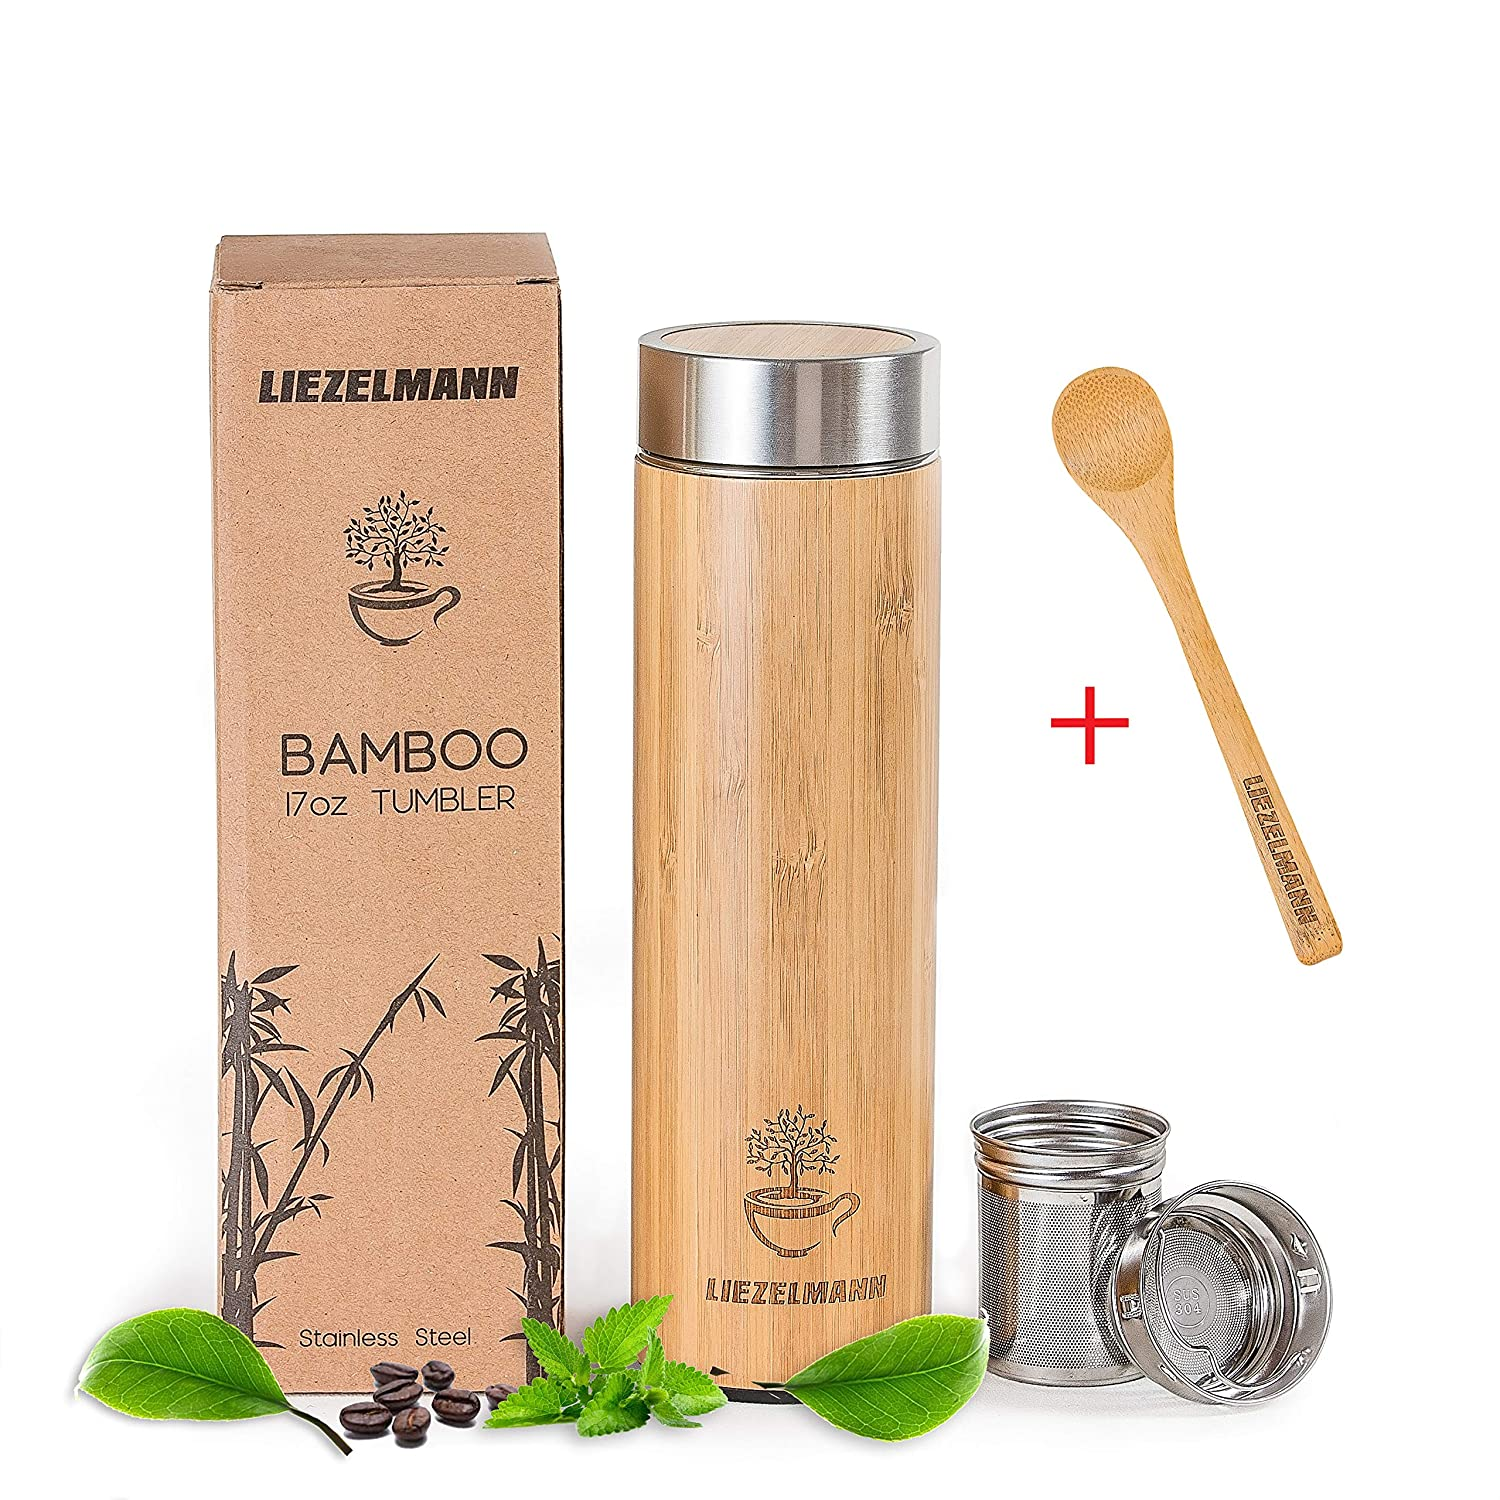 Bamboo Travel Tumbler Tea Infuser- 17oz Stainless Steel Thermos & Strainer, Mug for Hot/Cold Brew Coffee, Vacuum Insulated Bottle, Mesh filter for loose leaf, Fruit Infused Water Flask